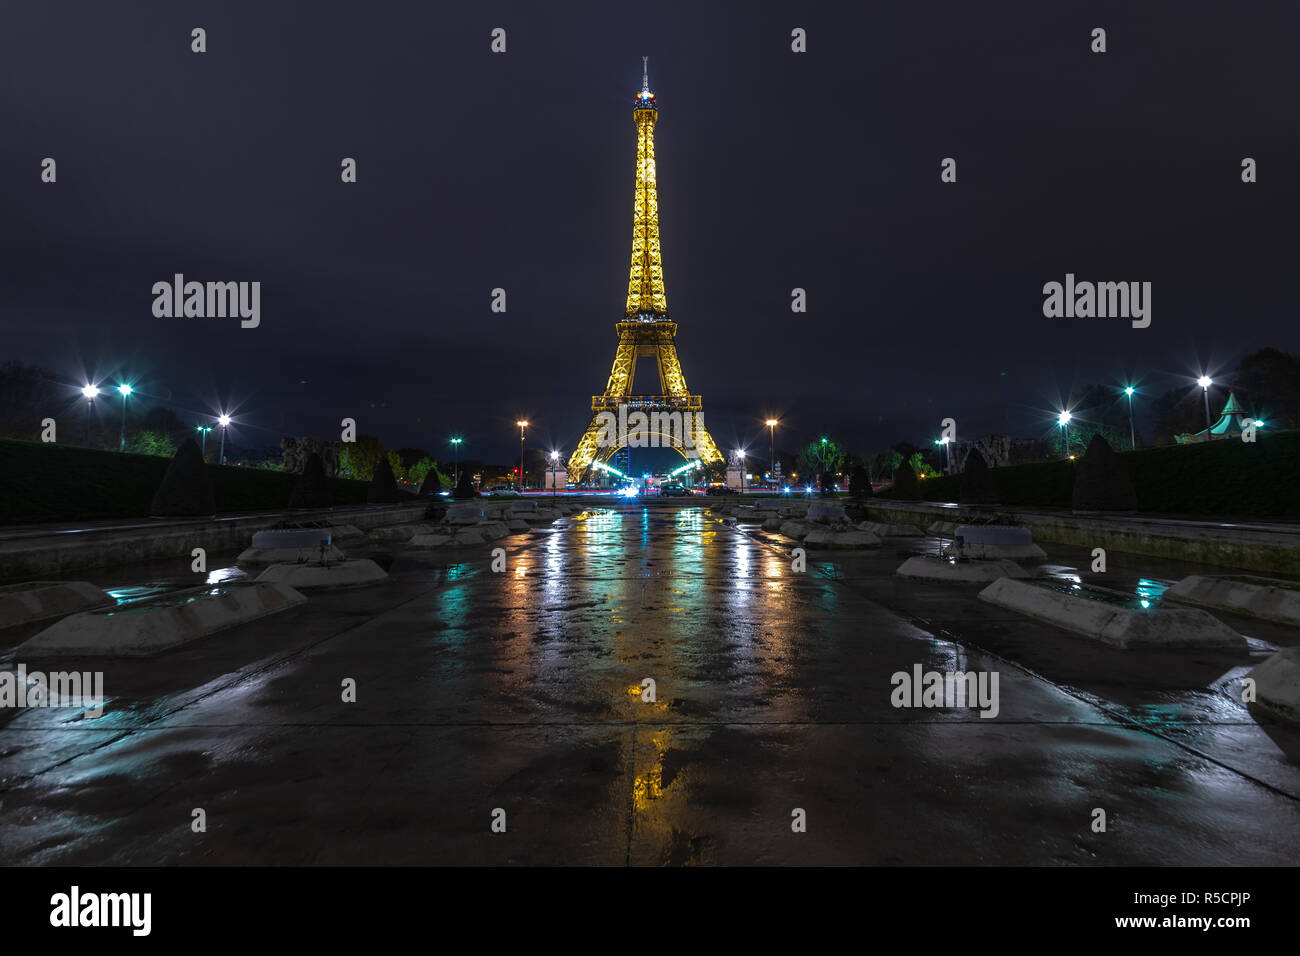 PARIS, 28 November 2018 - Illuminated Eiffel tower reflection on the Trocadero fountain water in Paris, one of the most visited building by the touris Stock Photo